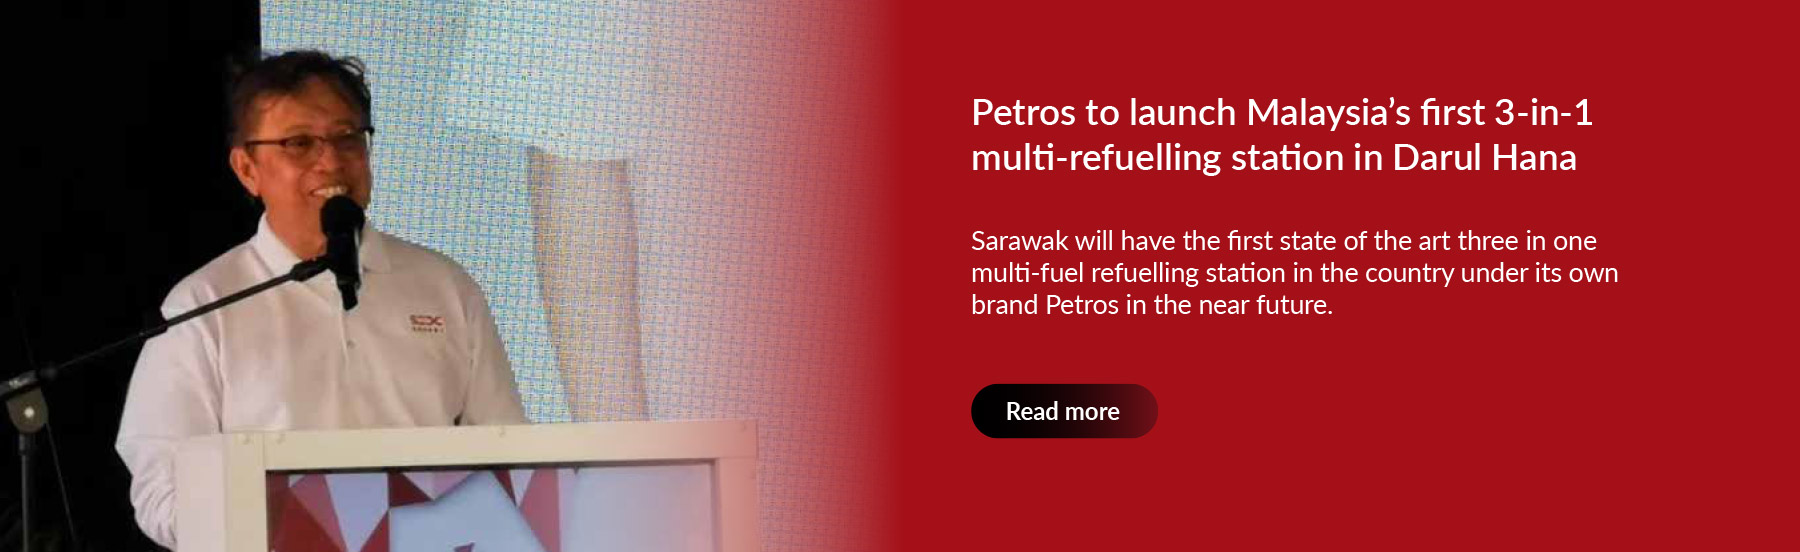 Petros to launch Malaysia's first 3-in-1 multi-refuelling station in Darul Hana